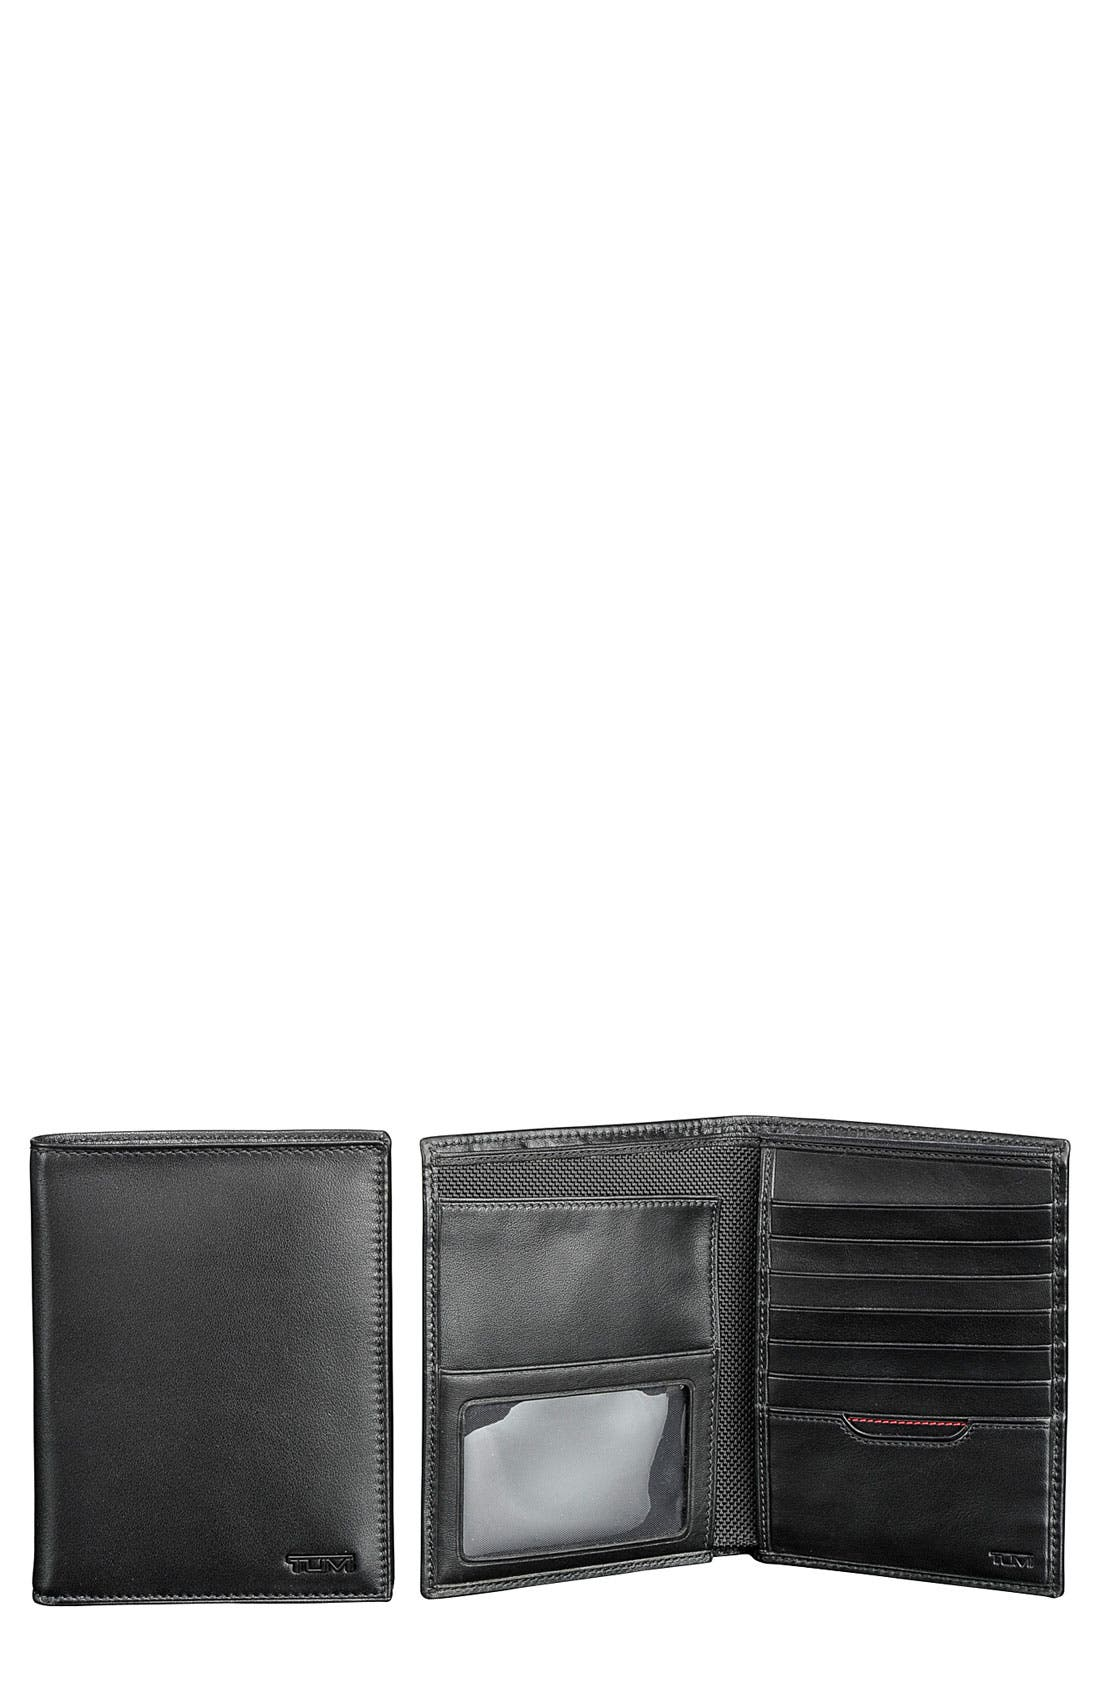 Delta Passport Case,                         Main,                         color, BLACK